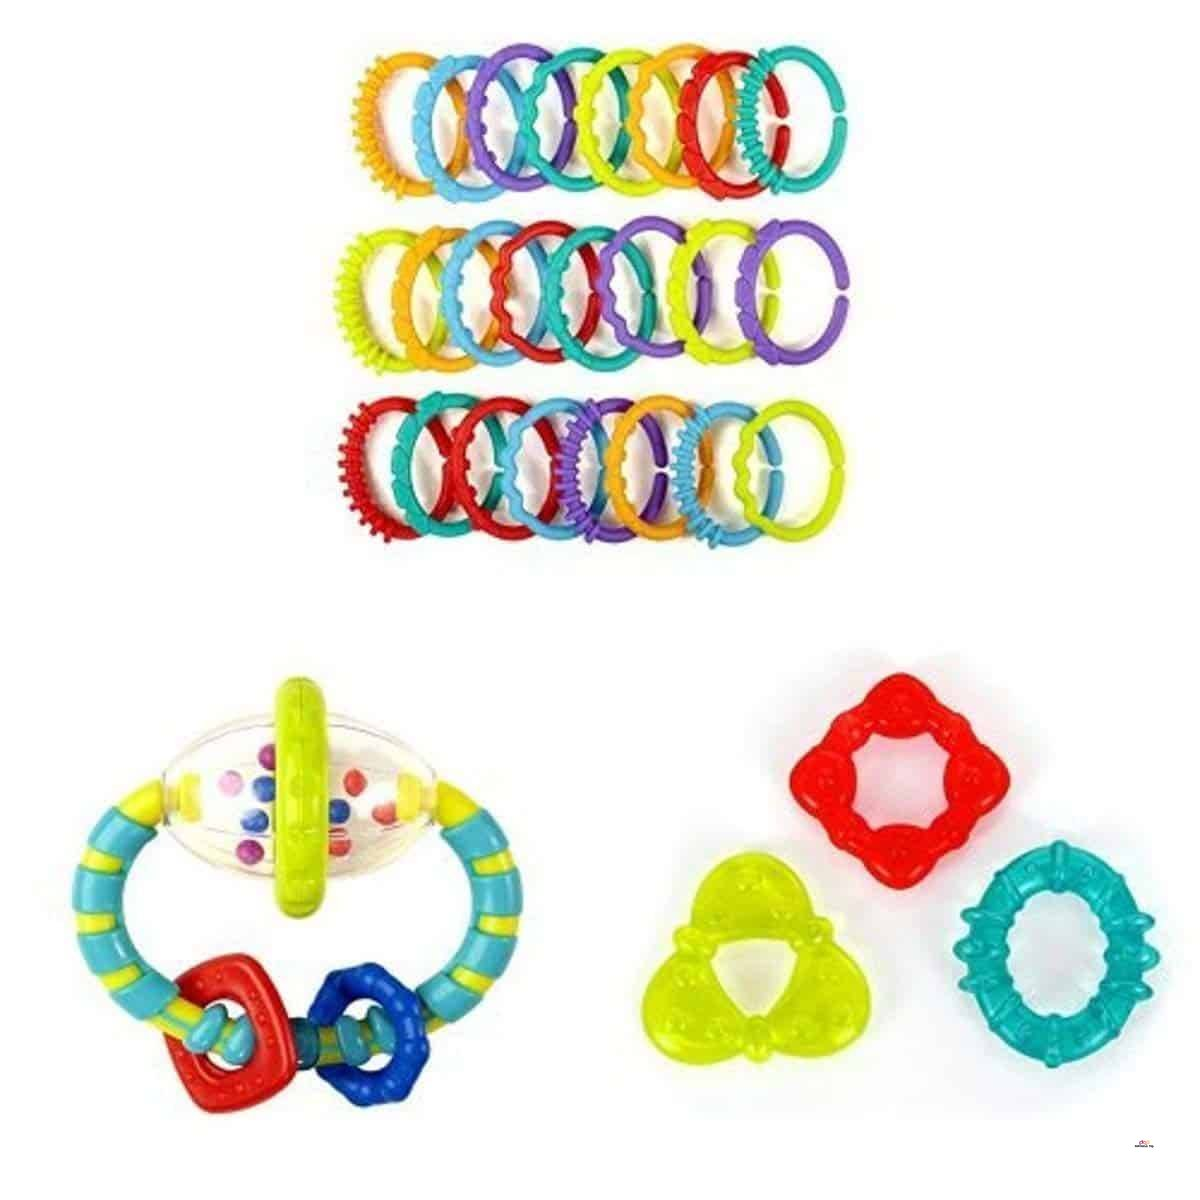 Product image of Bright Starts Snuggle Teether